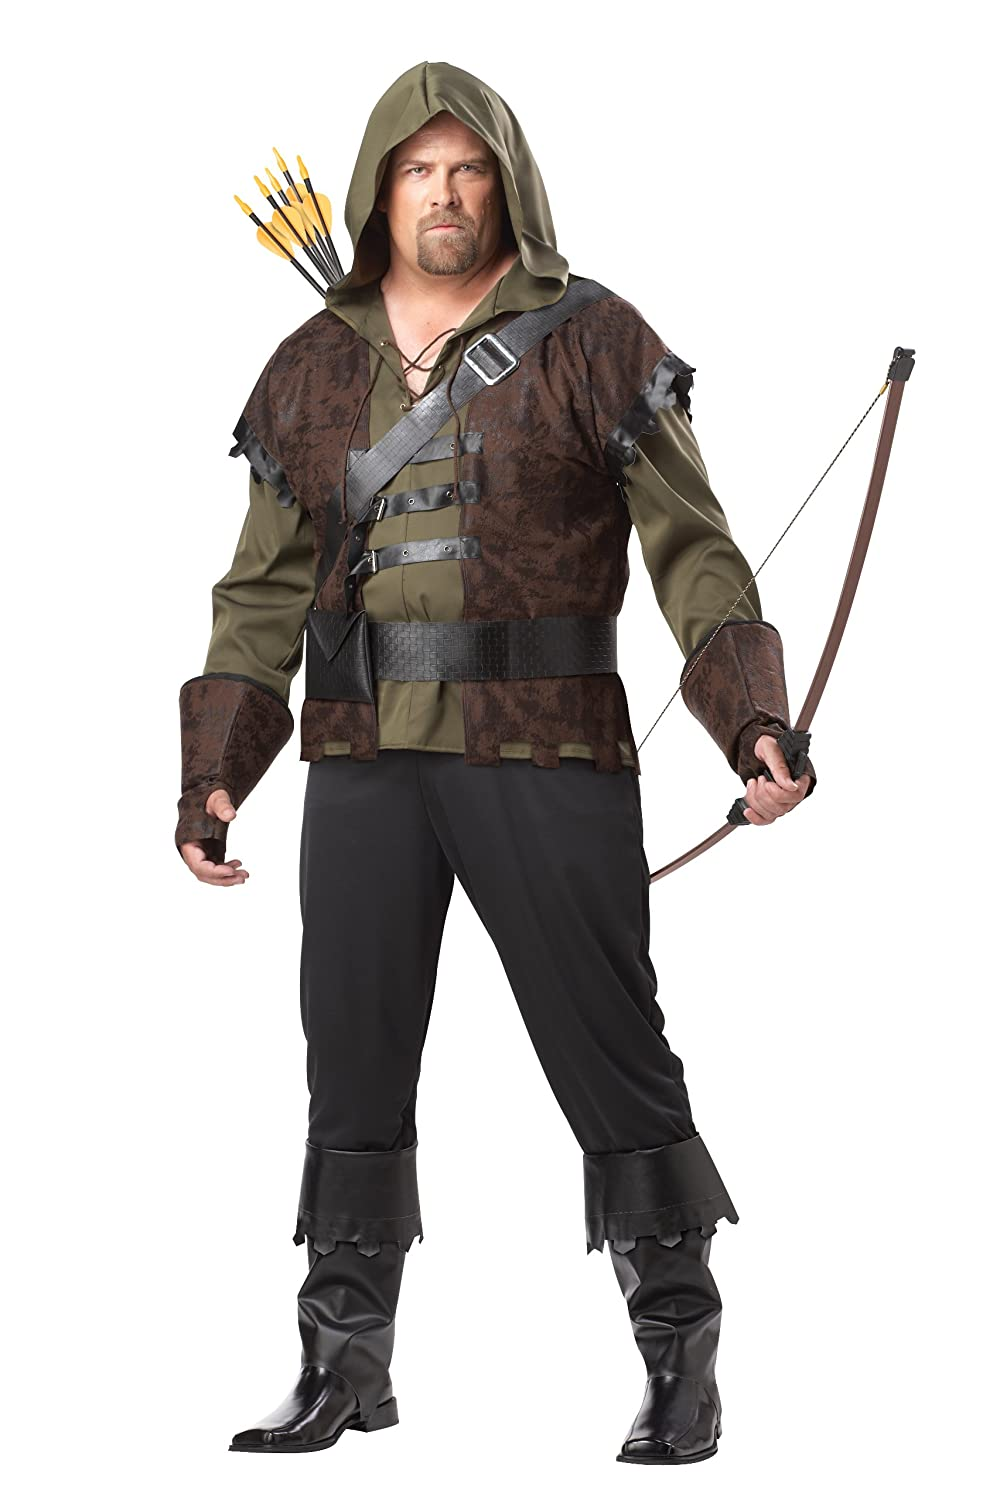 Amazon.com California Costumes Plus-Size Robin Hood Shirt With Vest Olive/Brown One Size Costume Clothing  sc 1 st  Amazon.com & Amazon.com: California Costumes Plus-Size Robin Hood Shirt With Vest ...